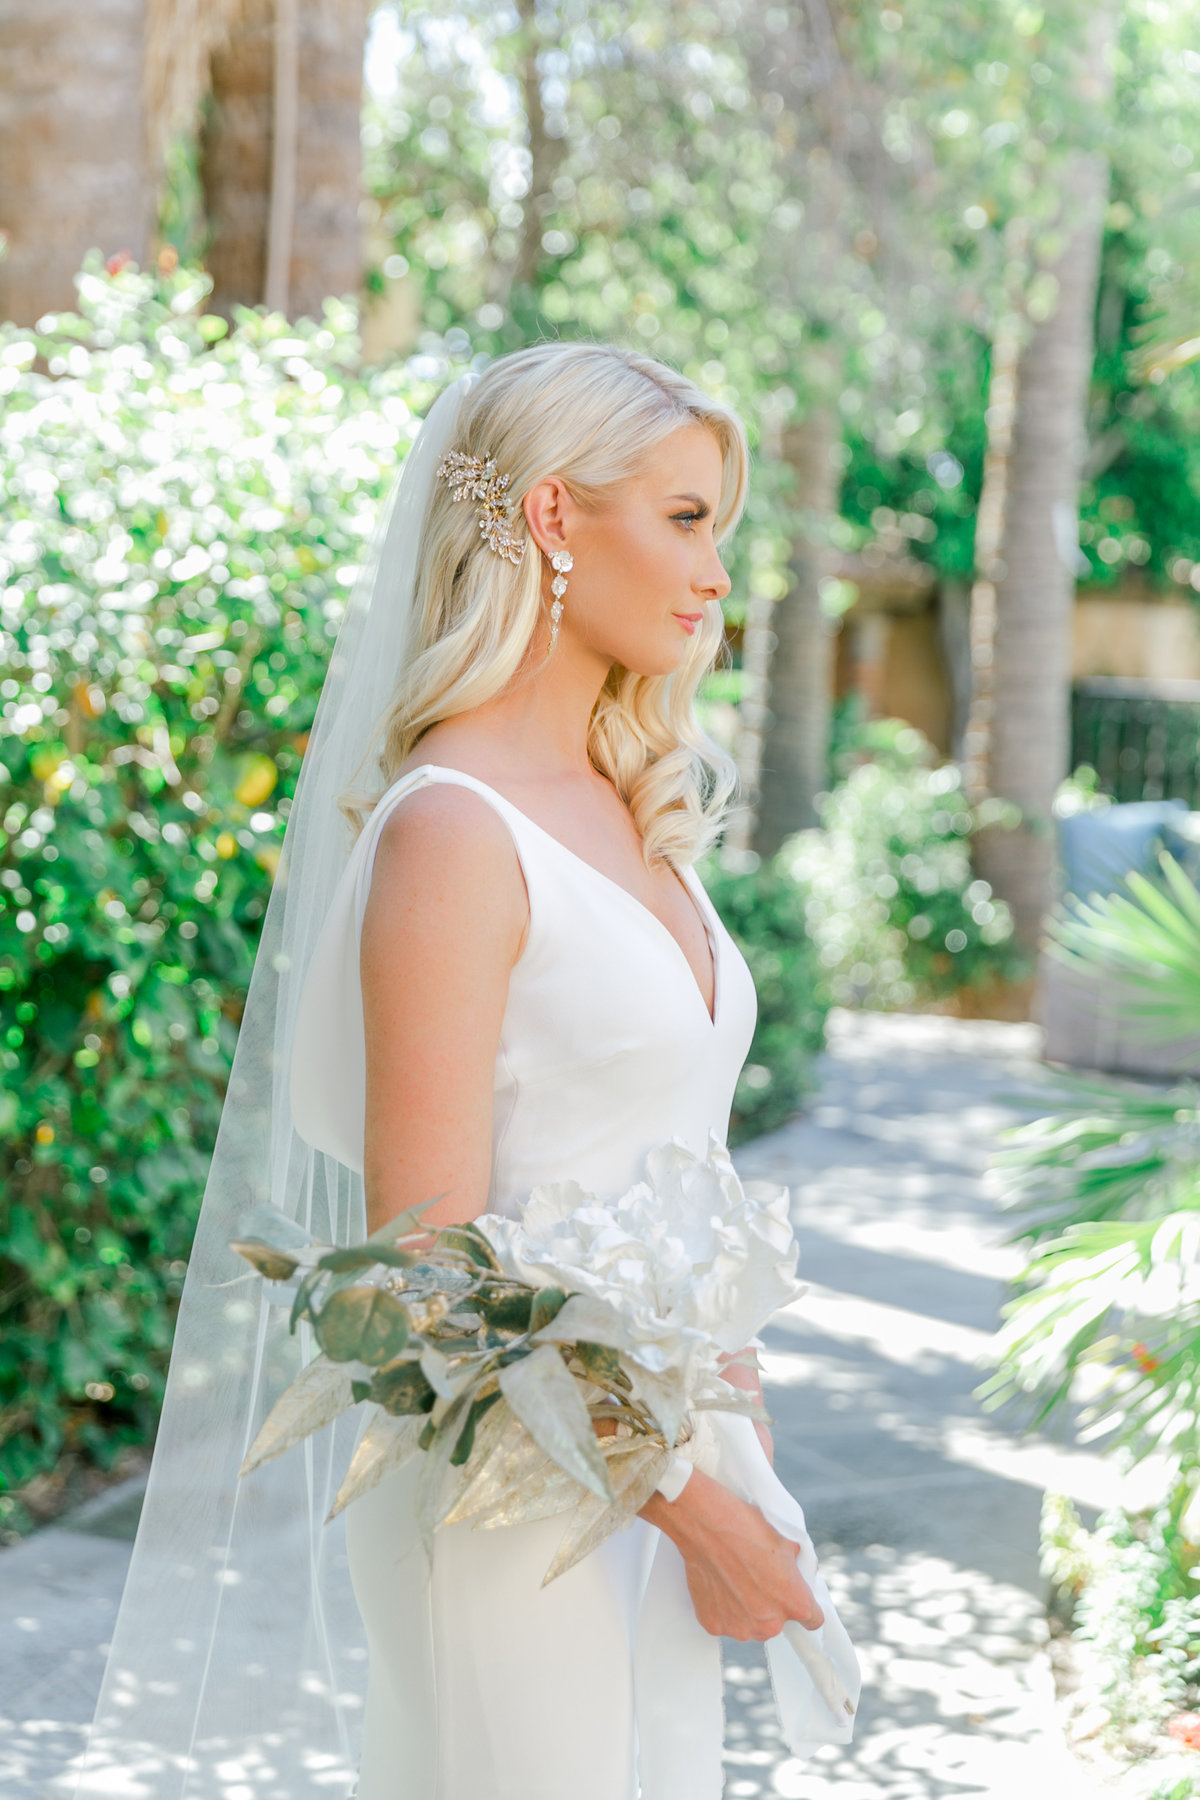 Karlie Colleen Photography - Arizona Wedding - Royal Palms Resort- Alex & Alex-36